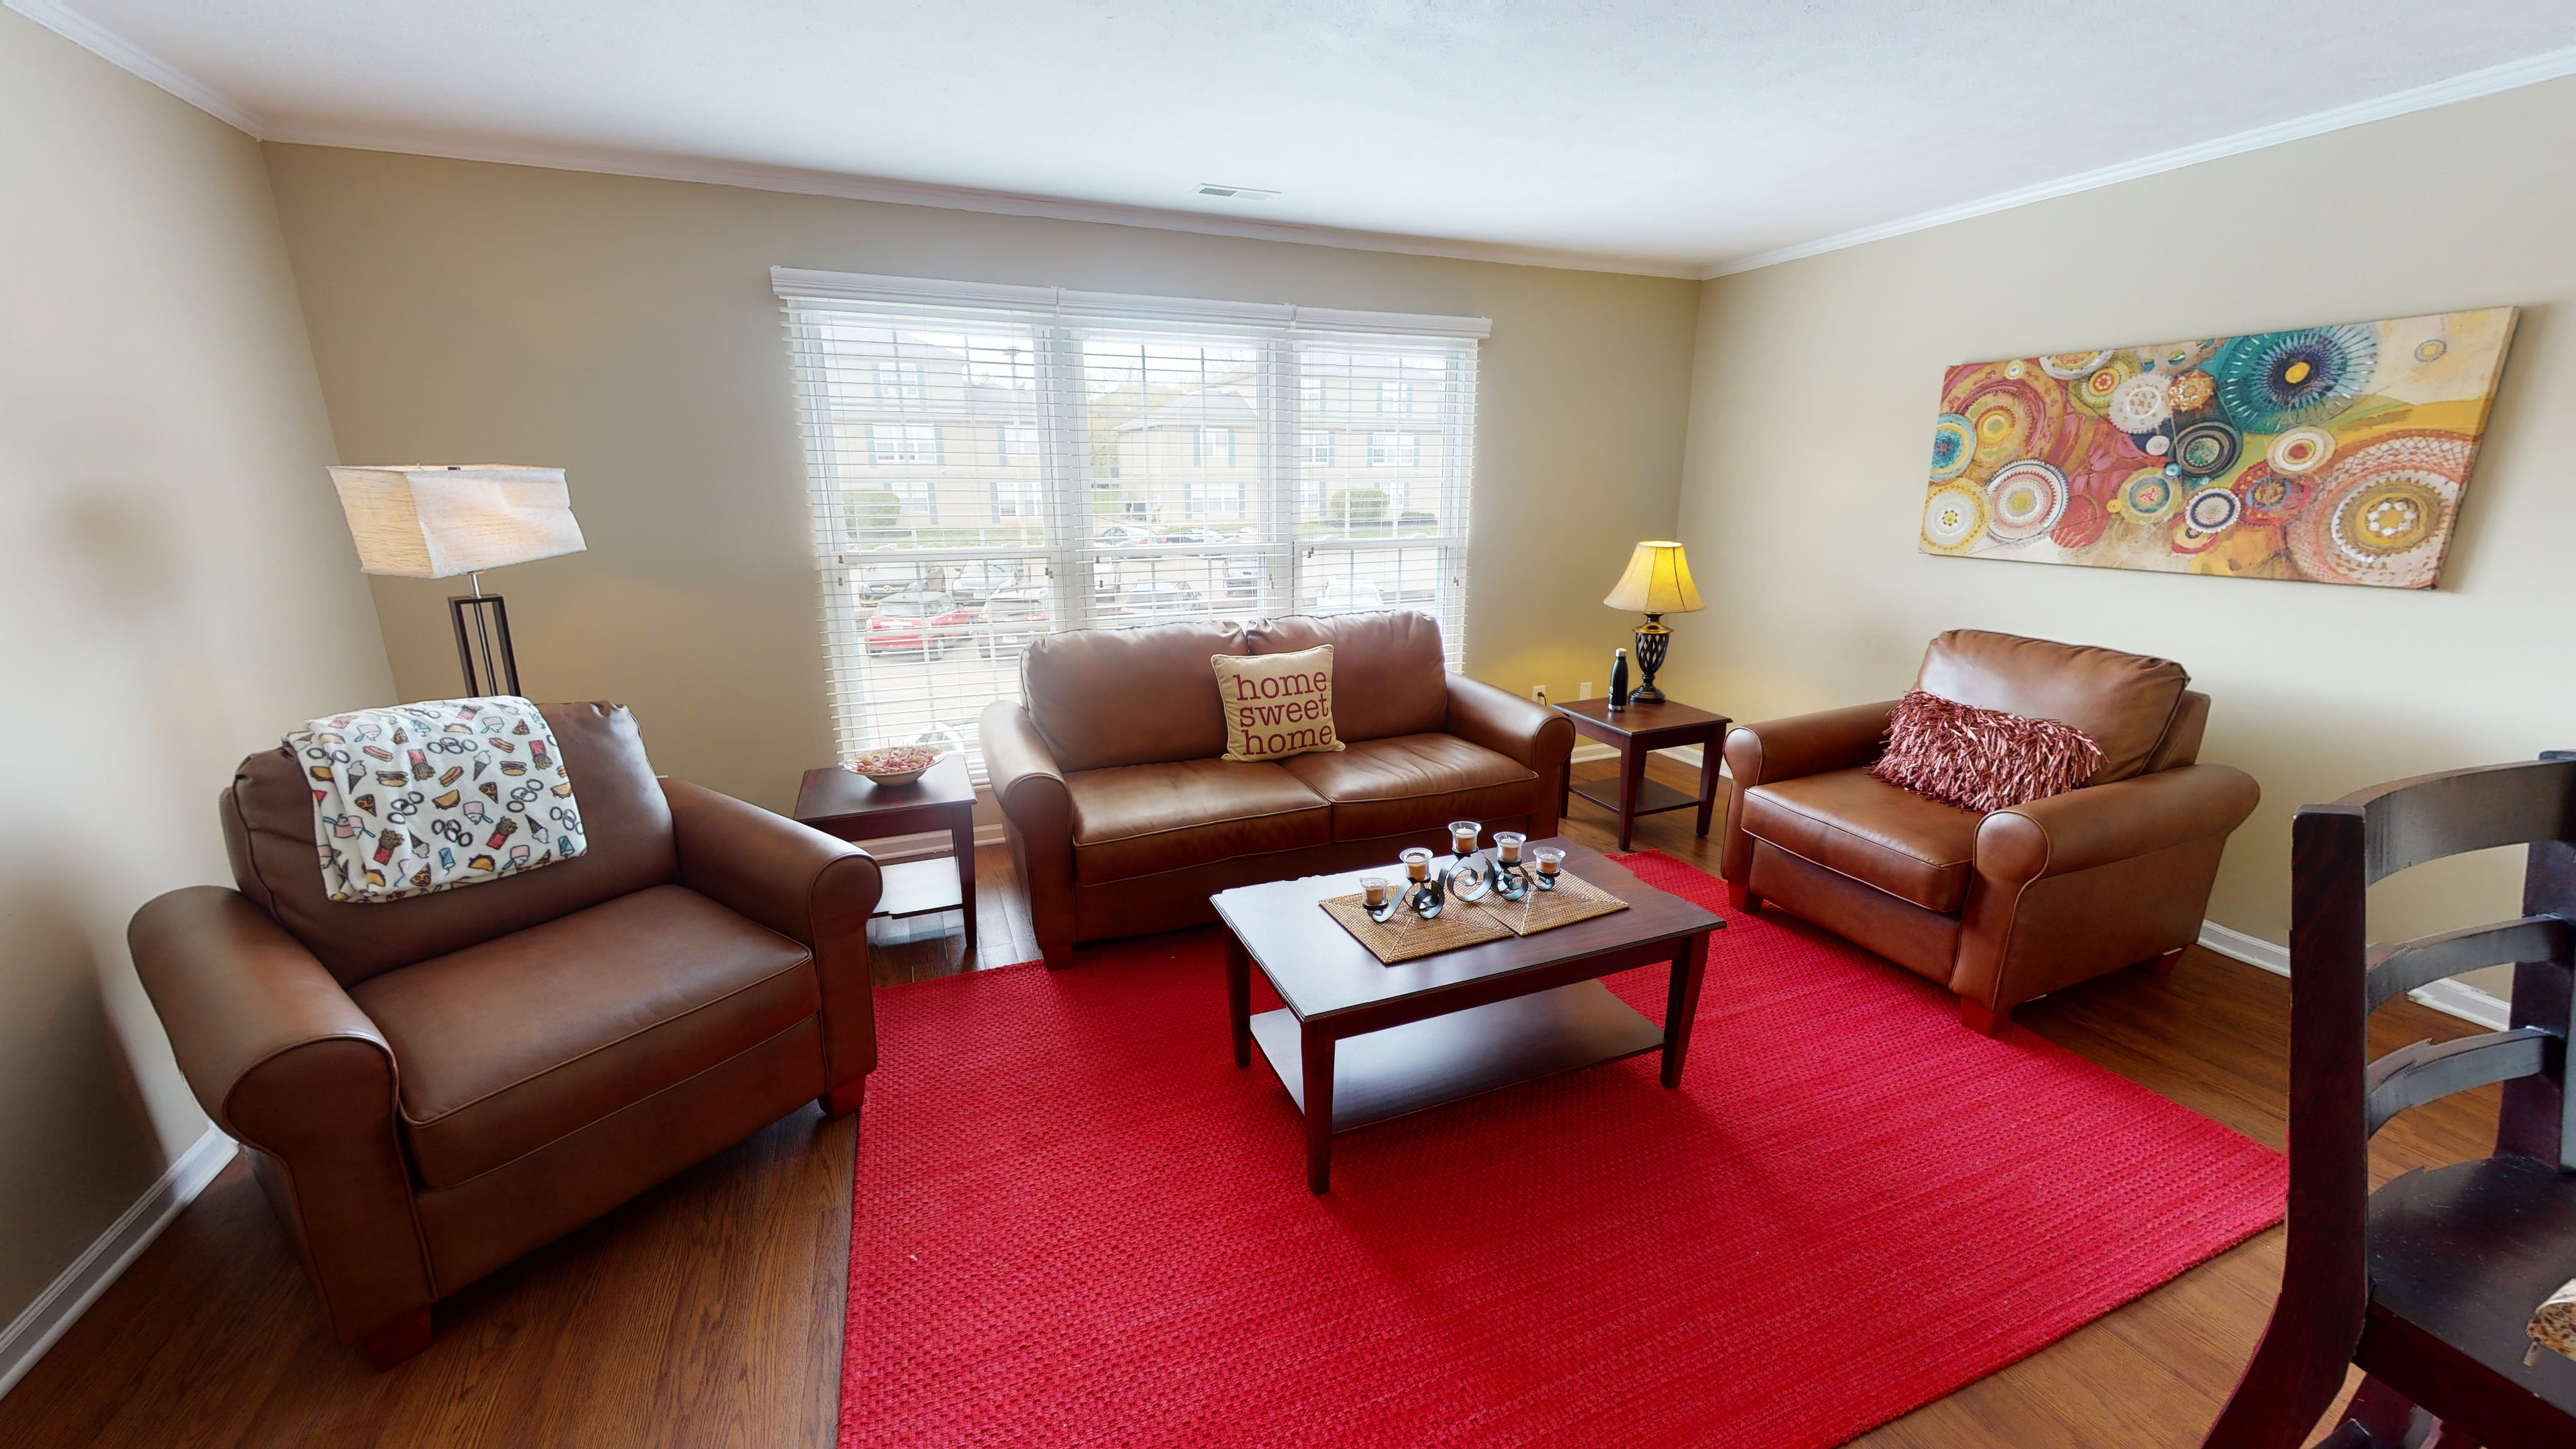 Leathre Furniture Package Included   Living Room   The Commons   Miami University Off Campus Housing